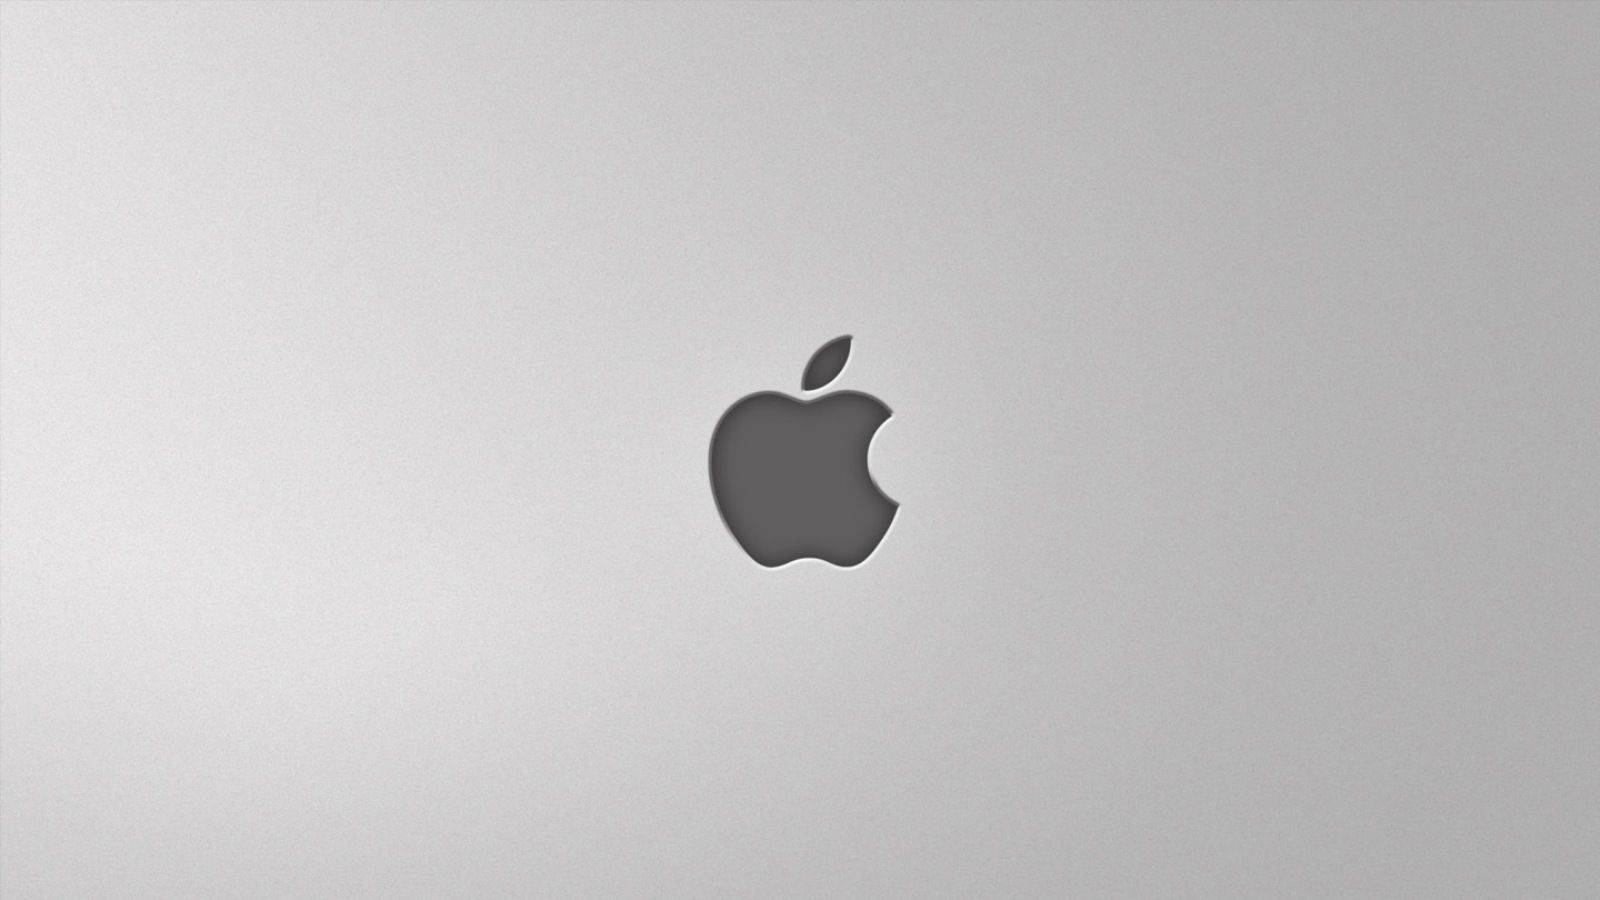 Silver Apple Logo Wallpapers Top Free Silver Apple Logo Backgrounds Wallpaperaccess